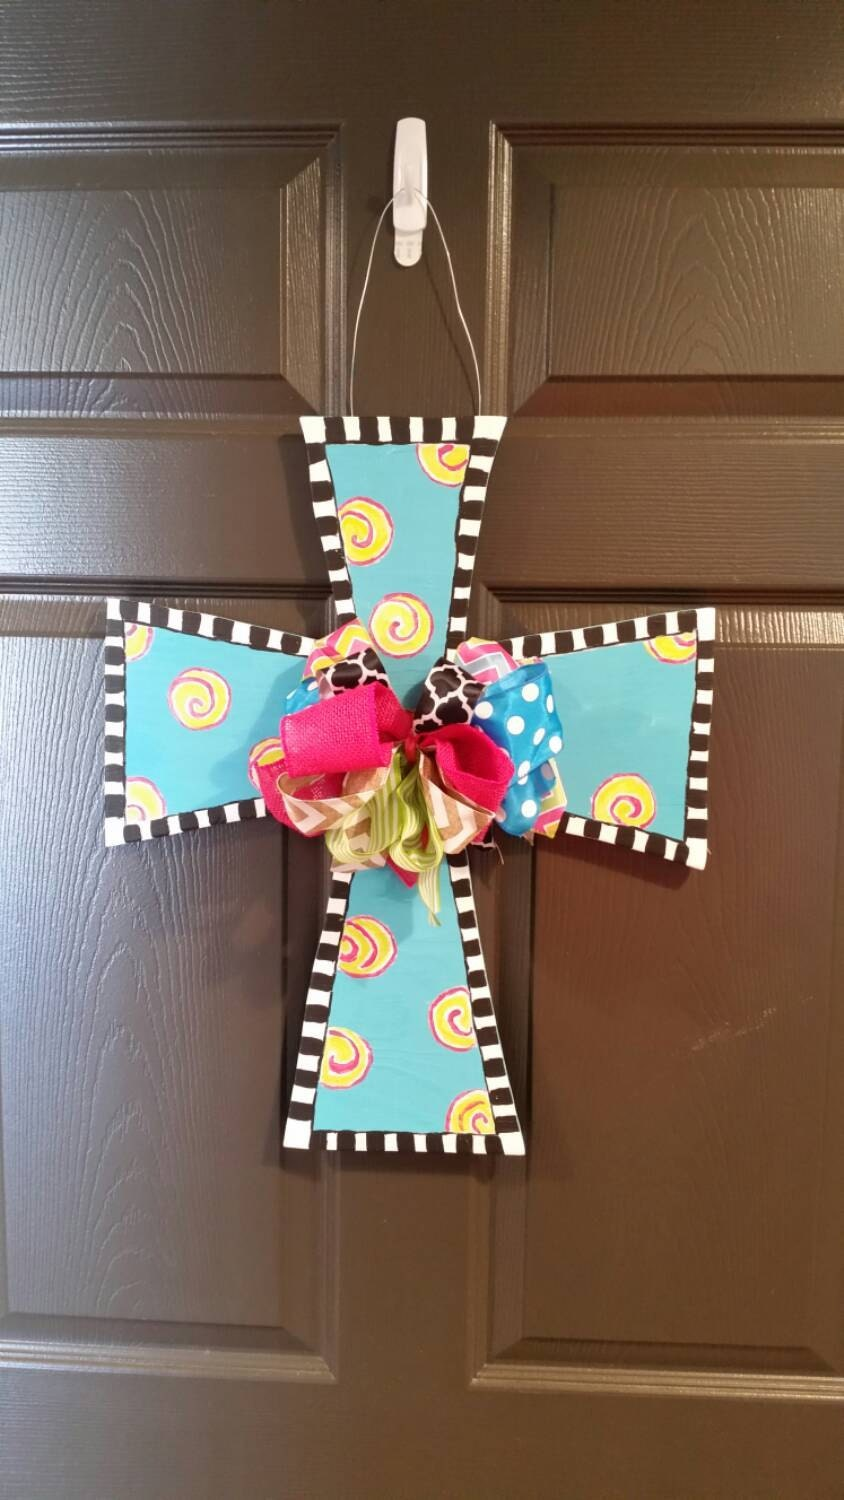 Decorative Door Hangers Decorative Painted Cross Door Hanger With Bow Door Hanger